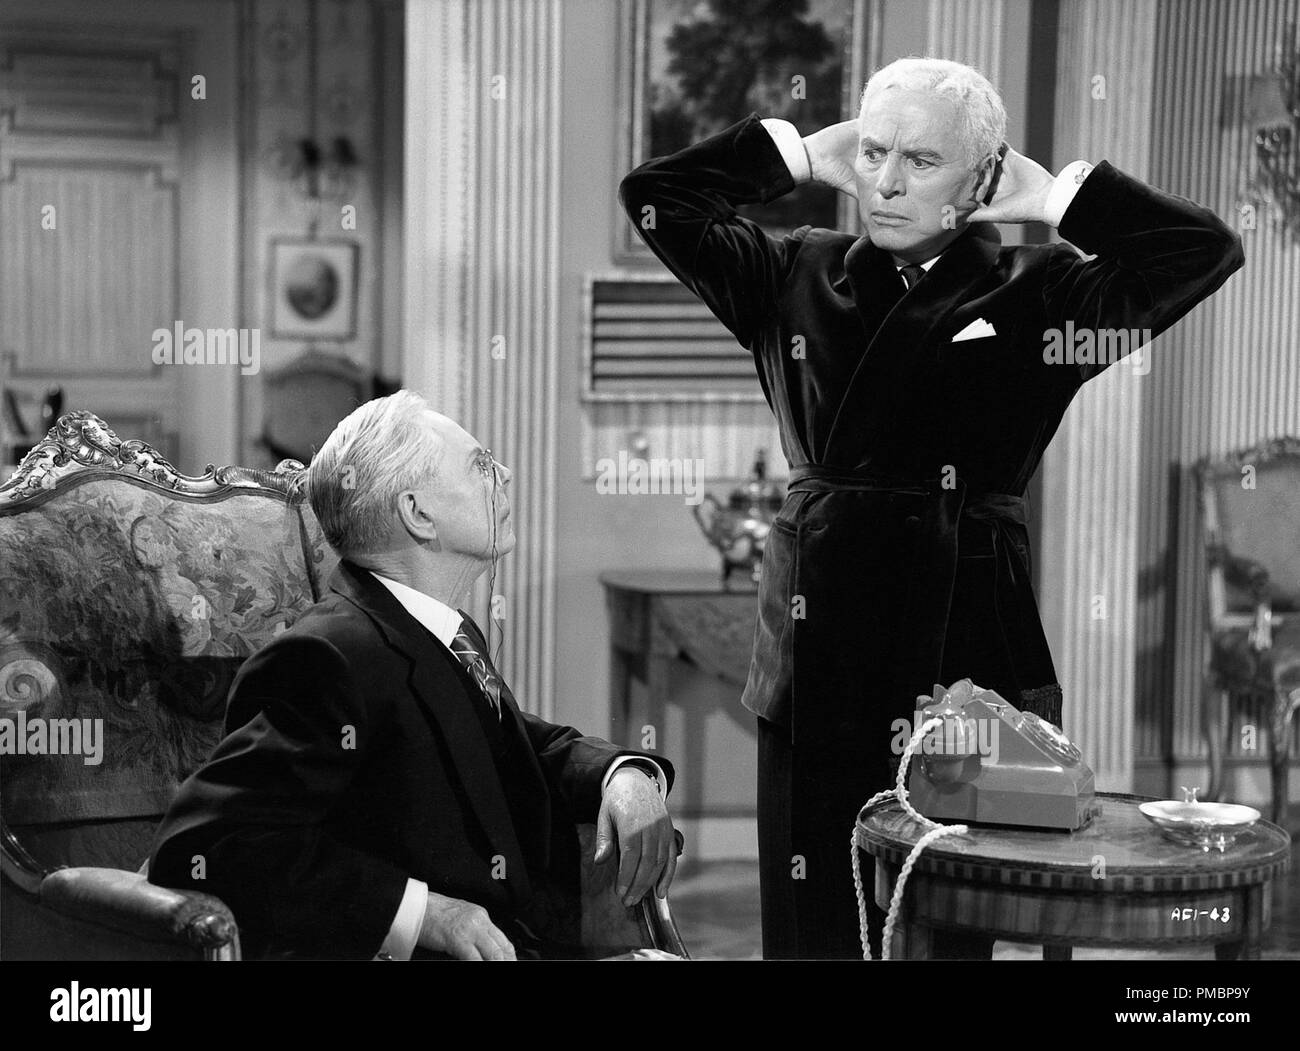 Charles Chaplin and Jerry Desmonde in 'A King in New York' 1957 Archway Ent. File Reference # 32603_348THA - Stock Image